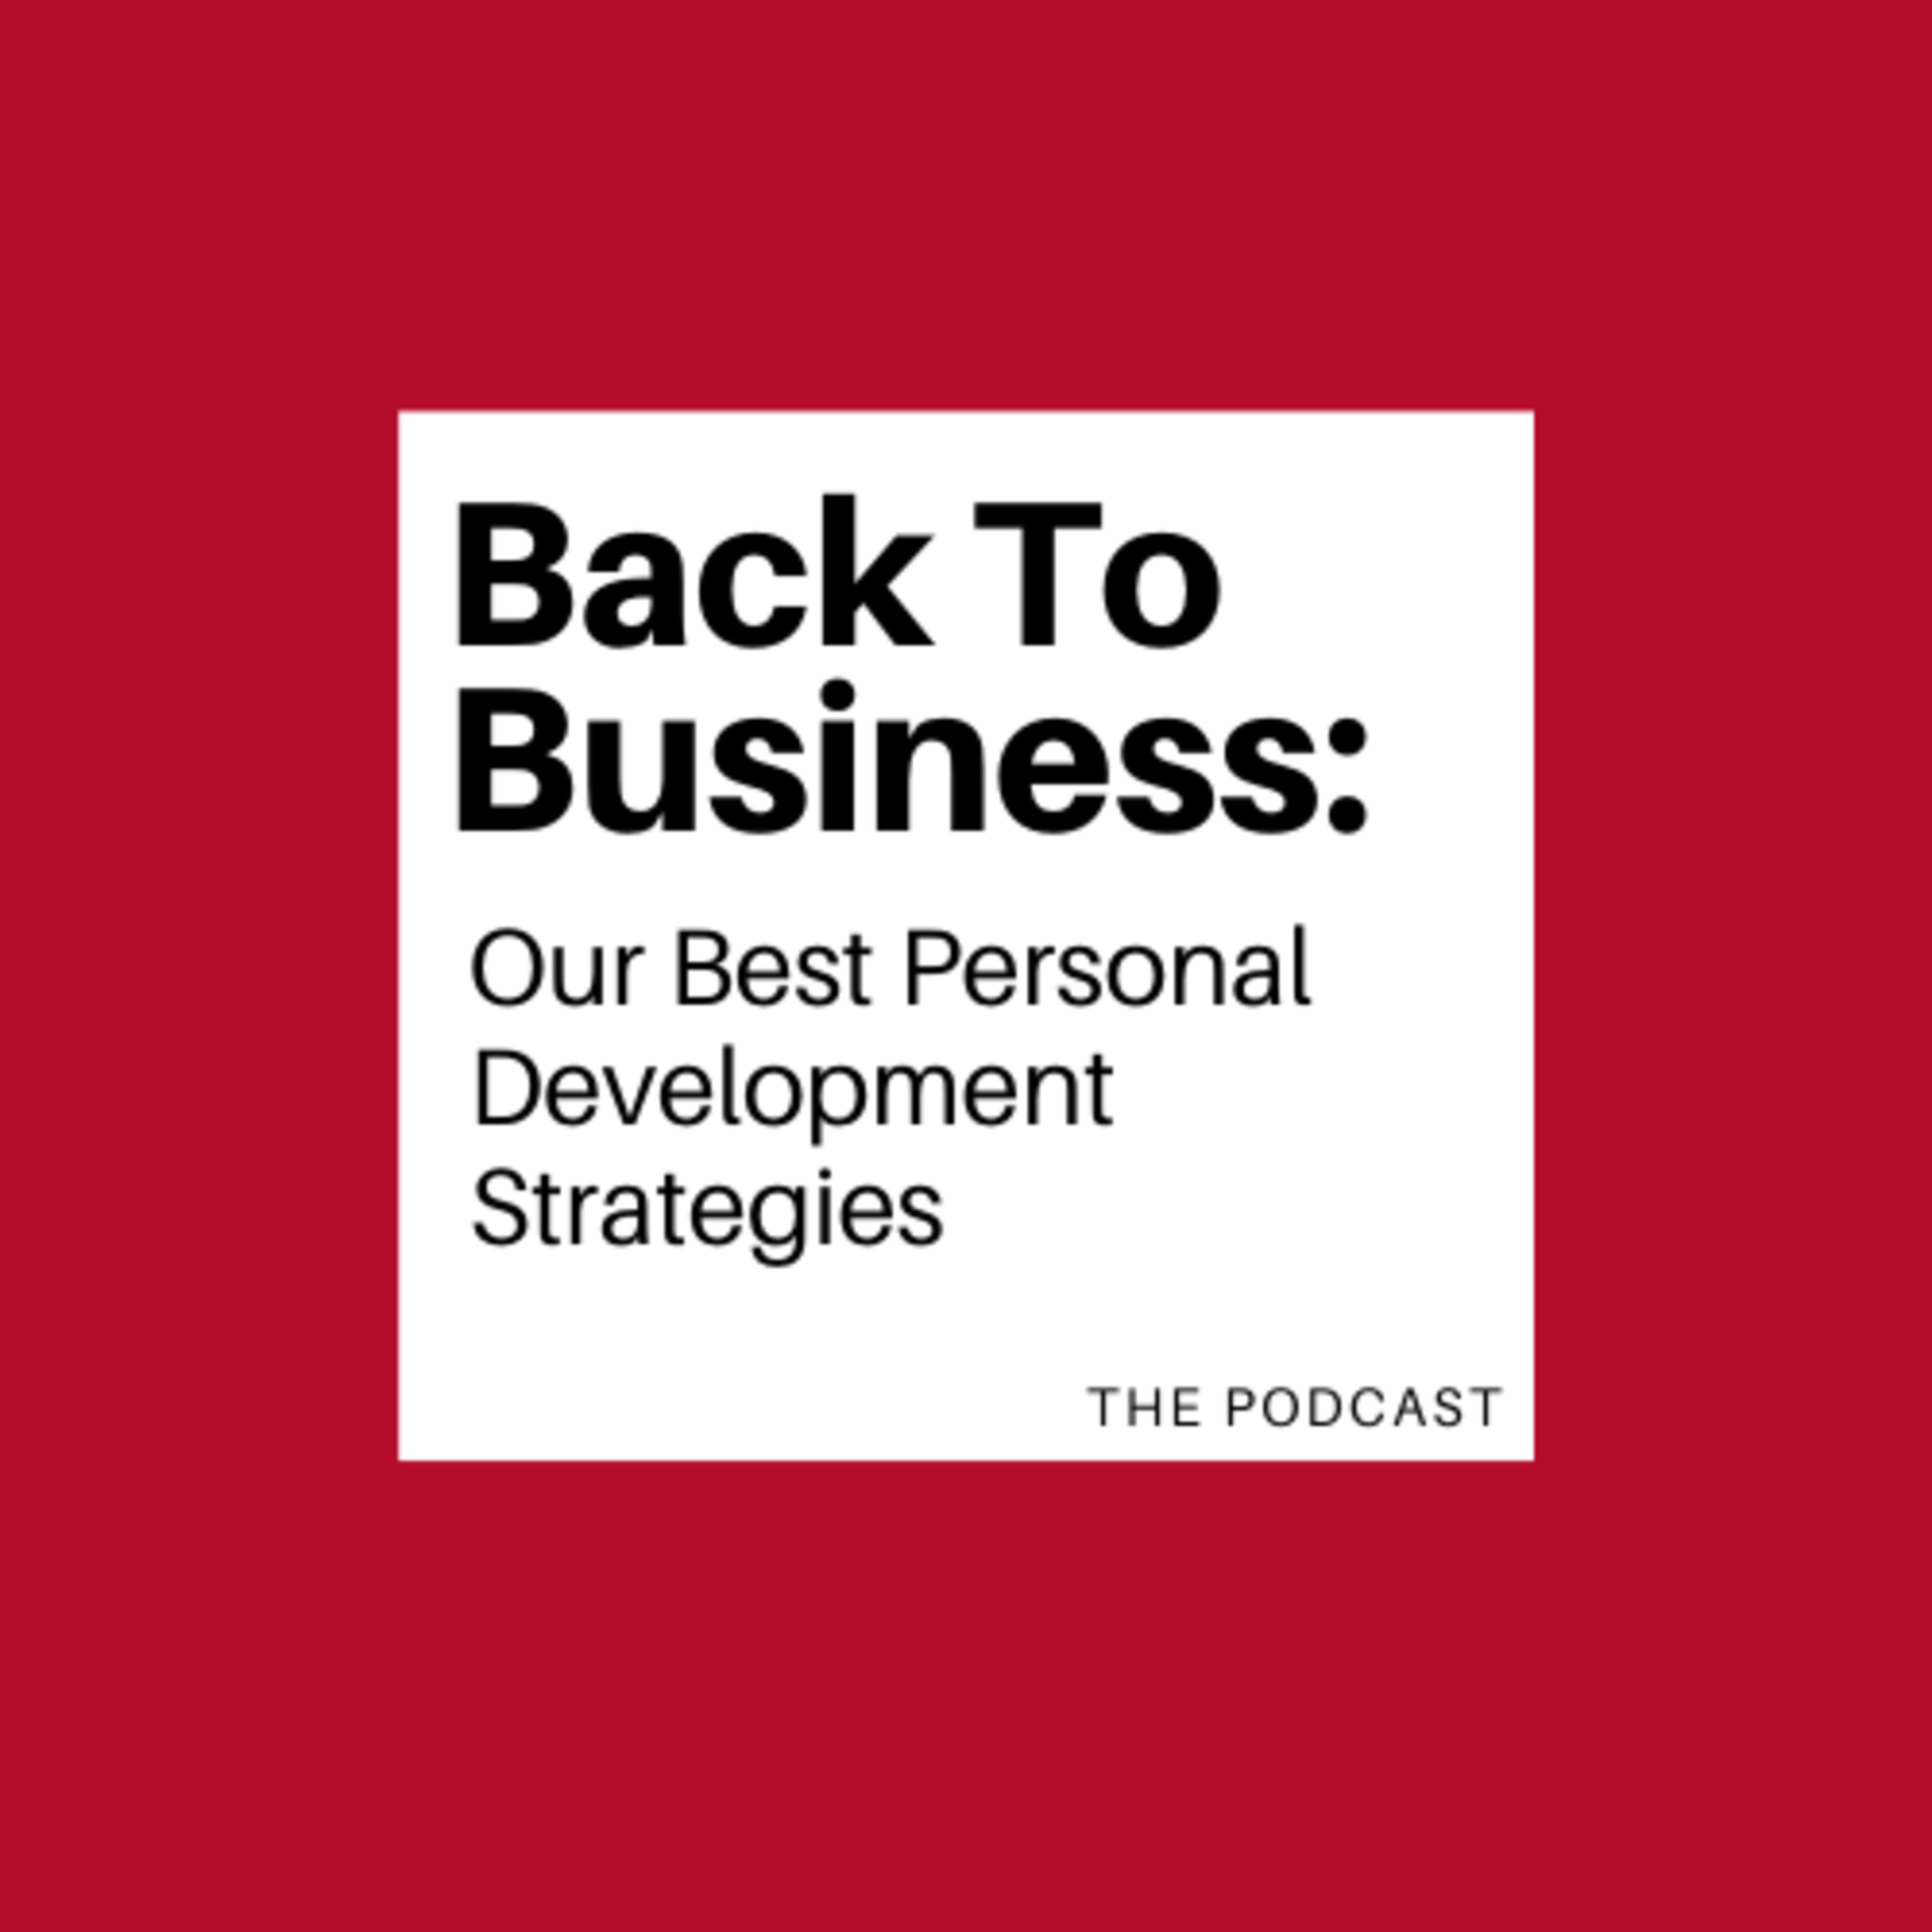 Episode 3: Our Best Personal Development Strategies